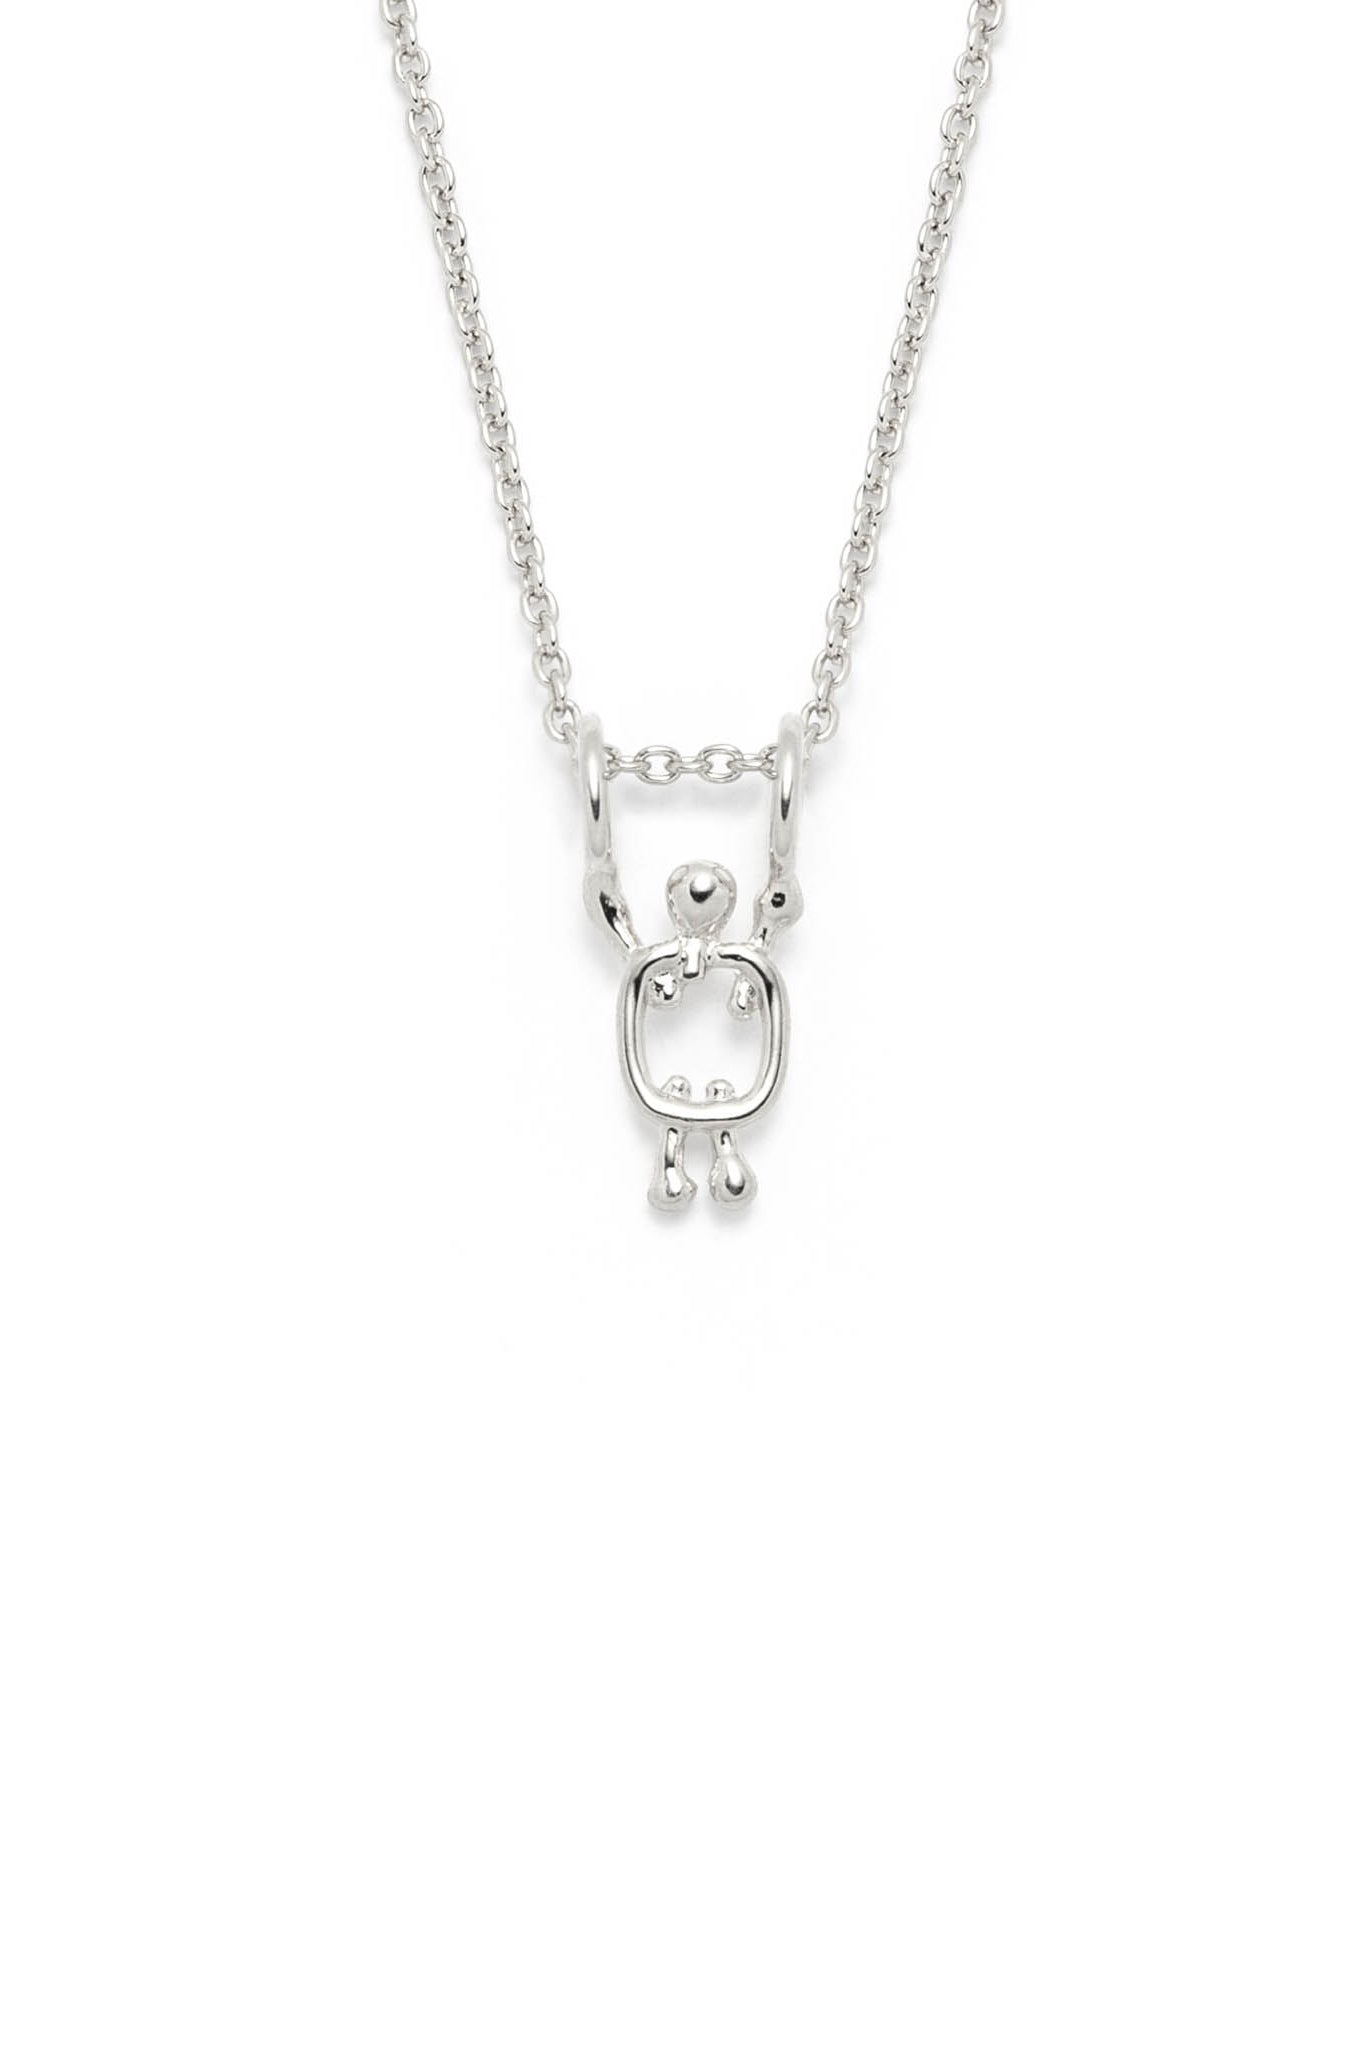 Boy charm by Lidia in sterling silver on a chain